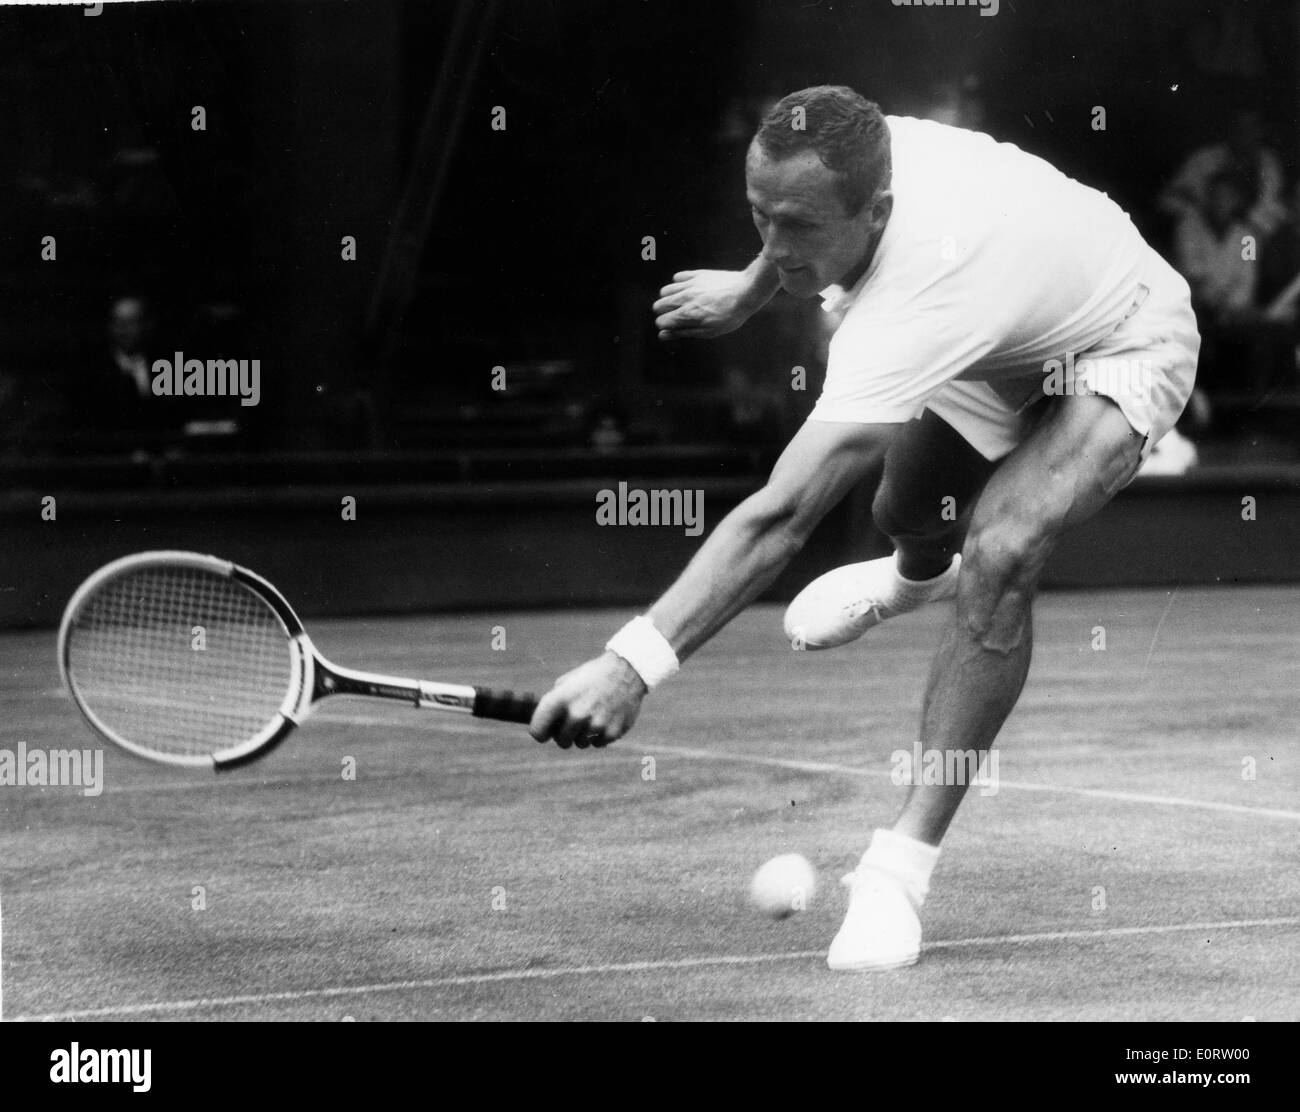 Tennis pro Neale Fraser during a match Stock Royalty Free